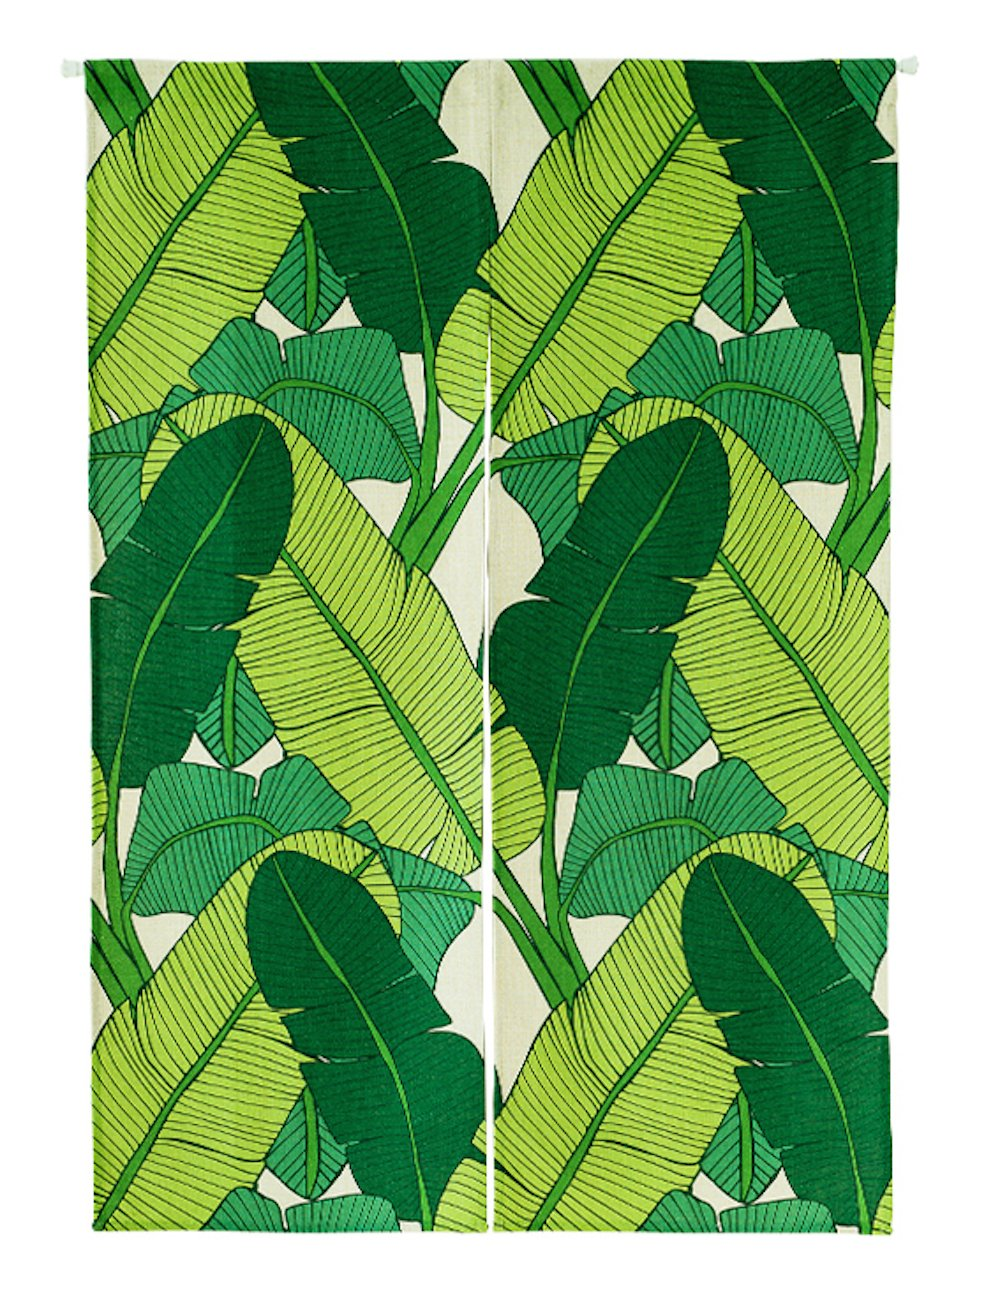 KARUILU home Japanese Noren Doorway Curtain Tapestry with Summer Mood 33.5'' Width x 47.2'' Long (Green Banana Leaves A)